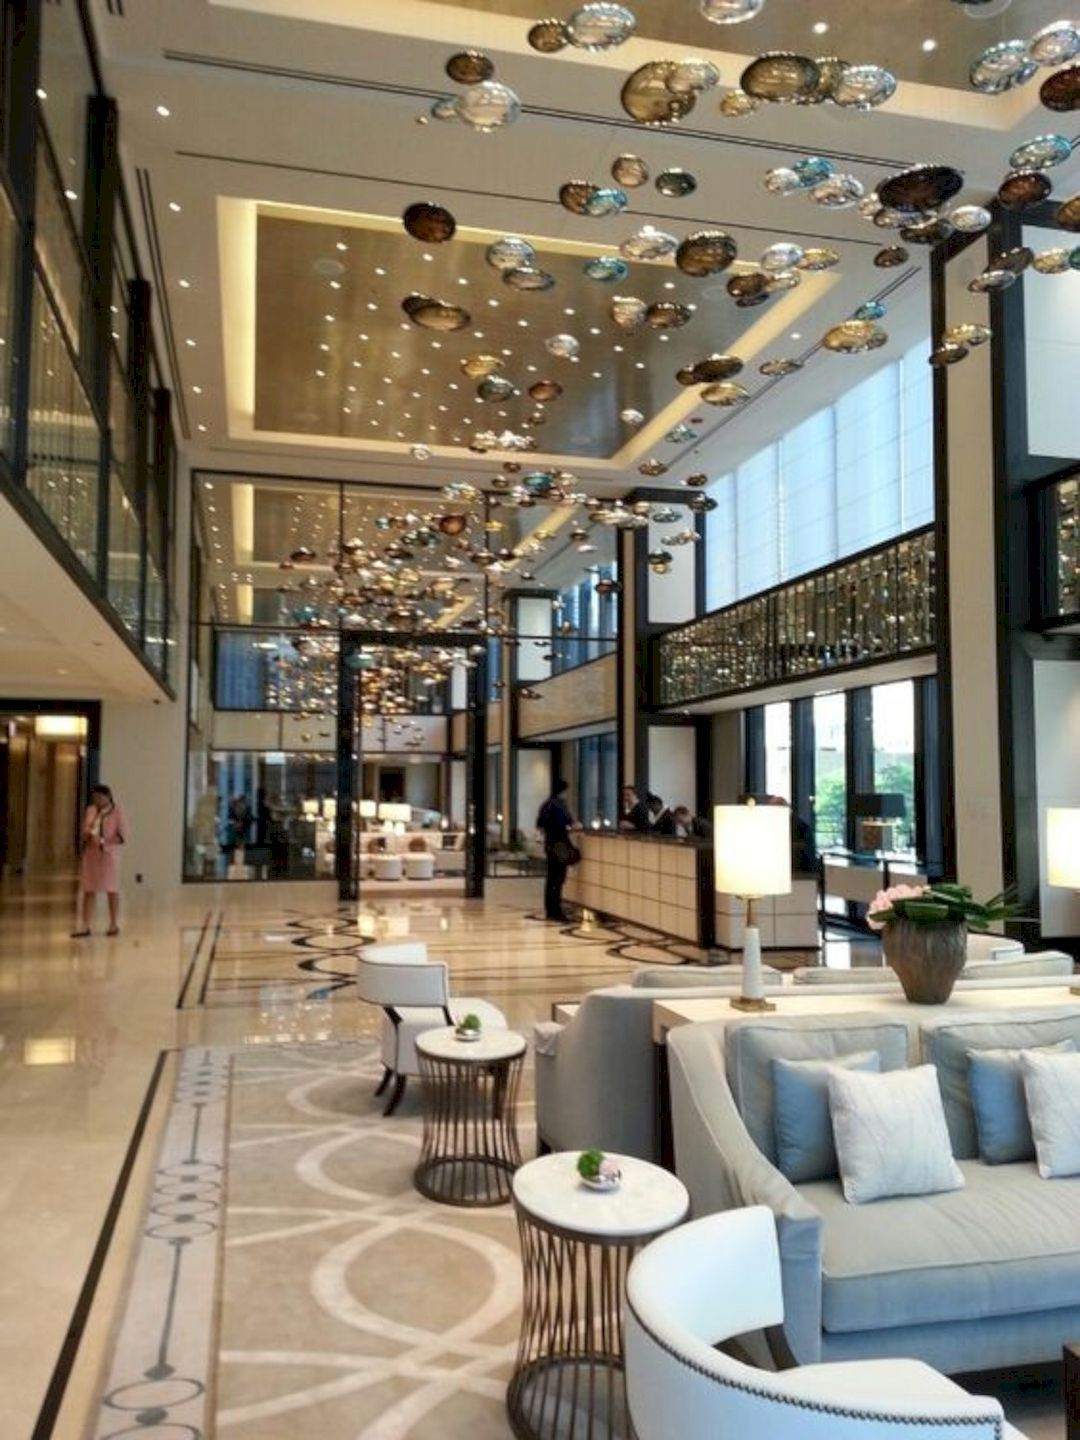 17 impressive interior design ideas for lobby https www futuristarchitecture com